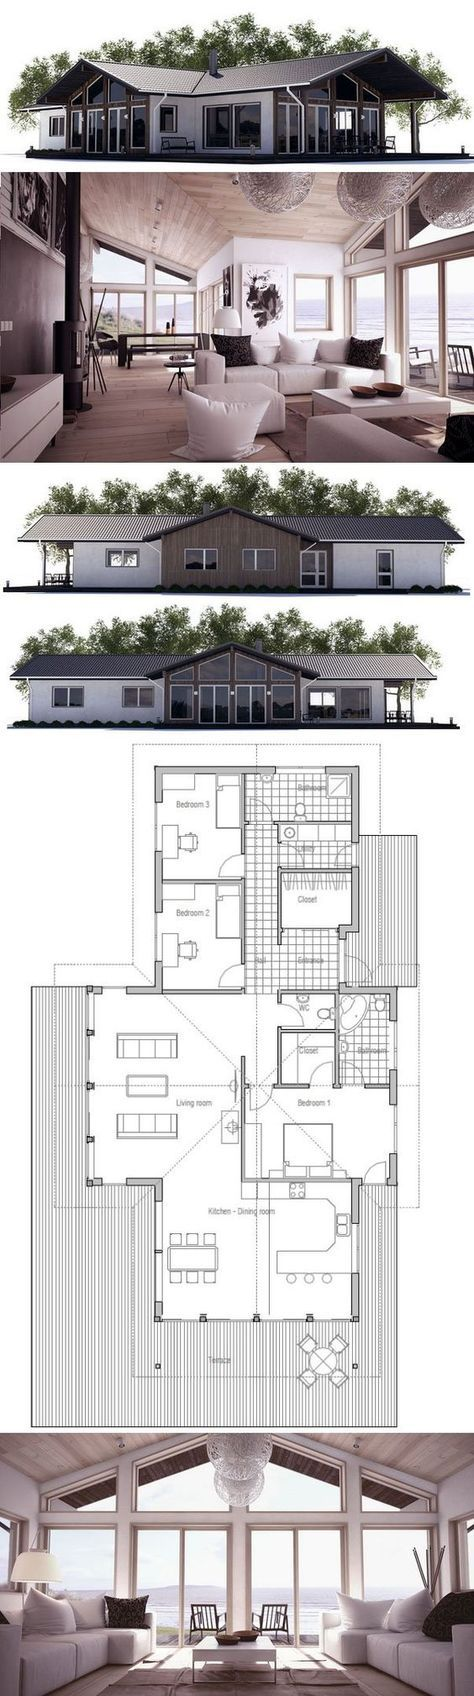 20 best t shaped houses plans images on pinterest small house plan with three bedrooms and open planning floor plan from concepthome